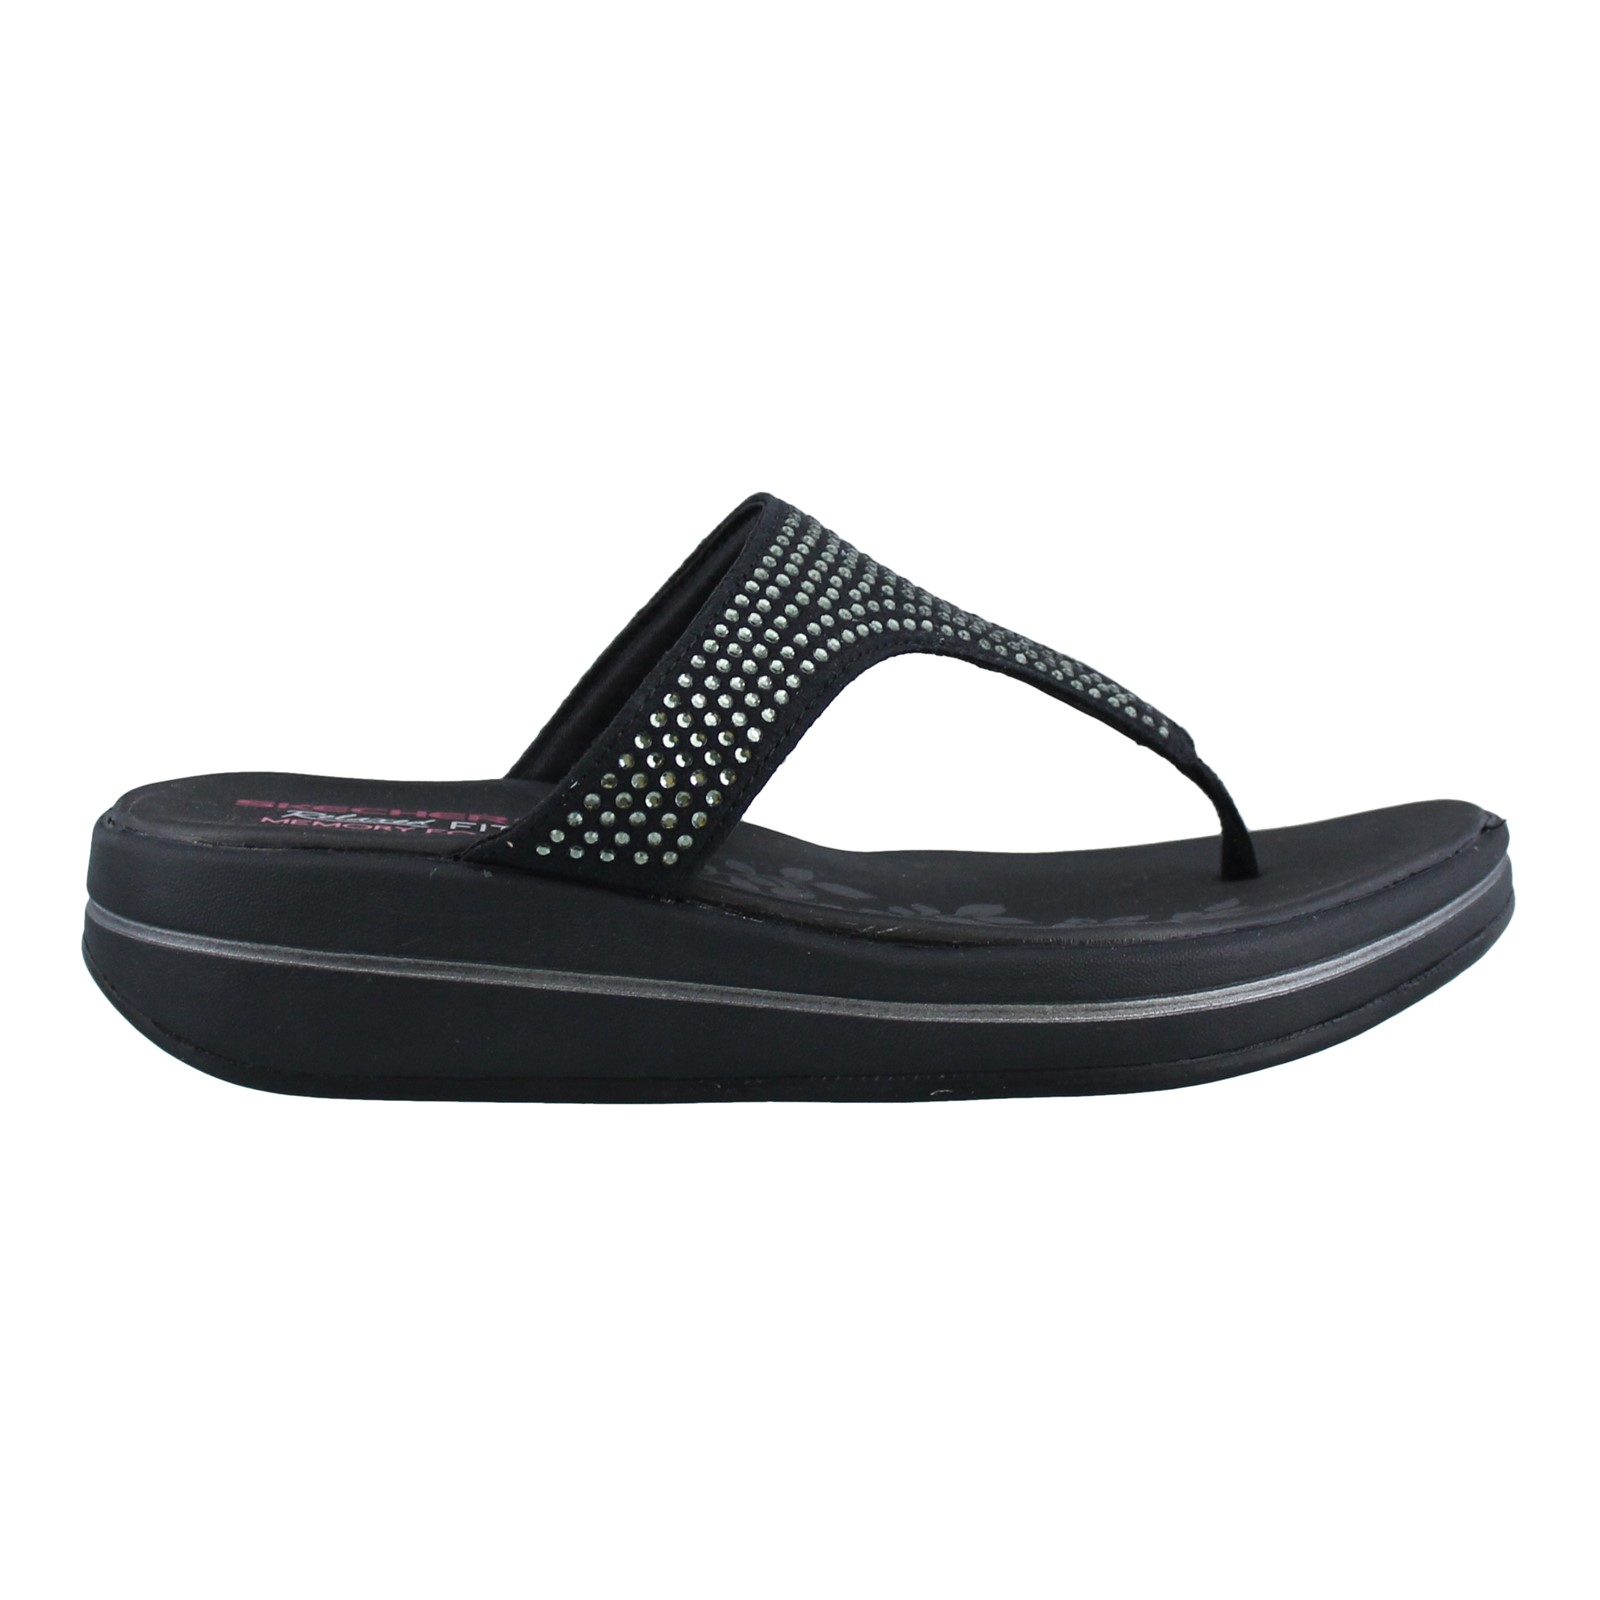 Women's Skechers, Upgrades Stones Thong Sandals